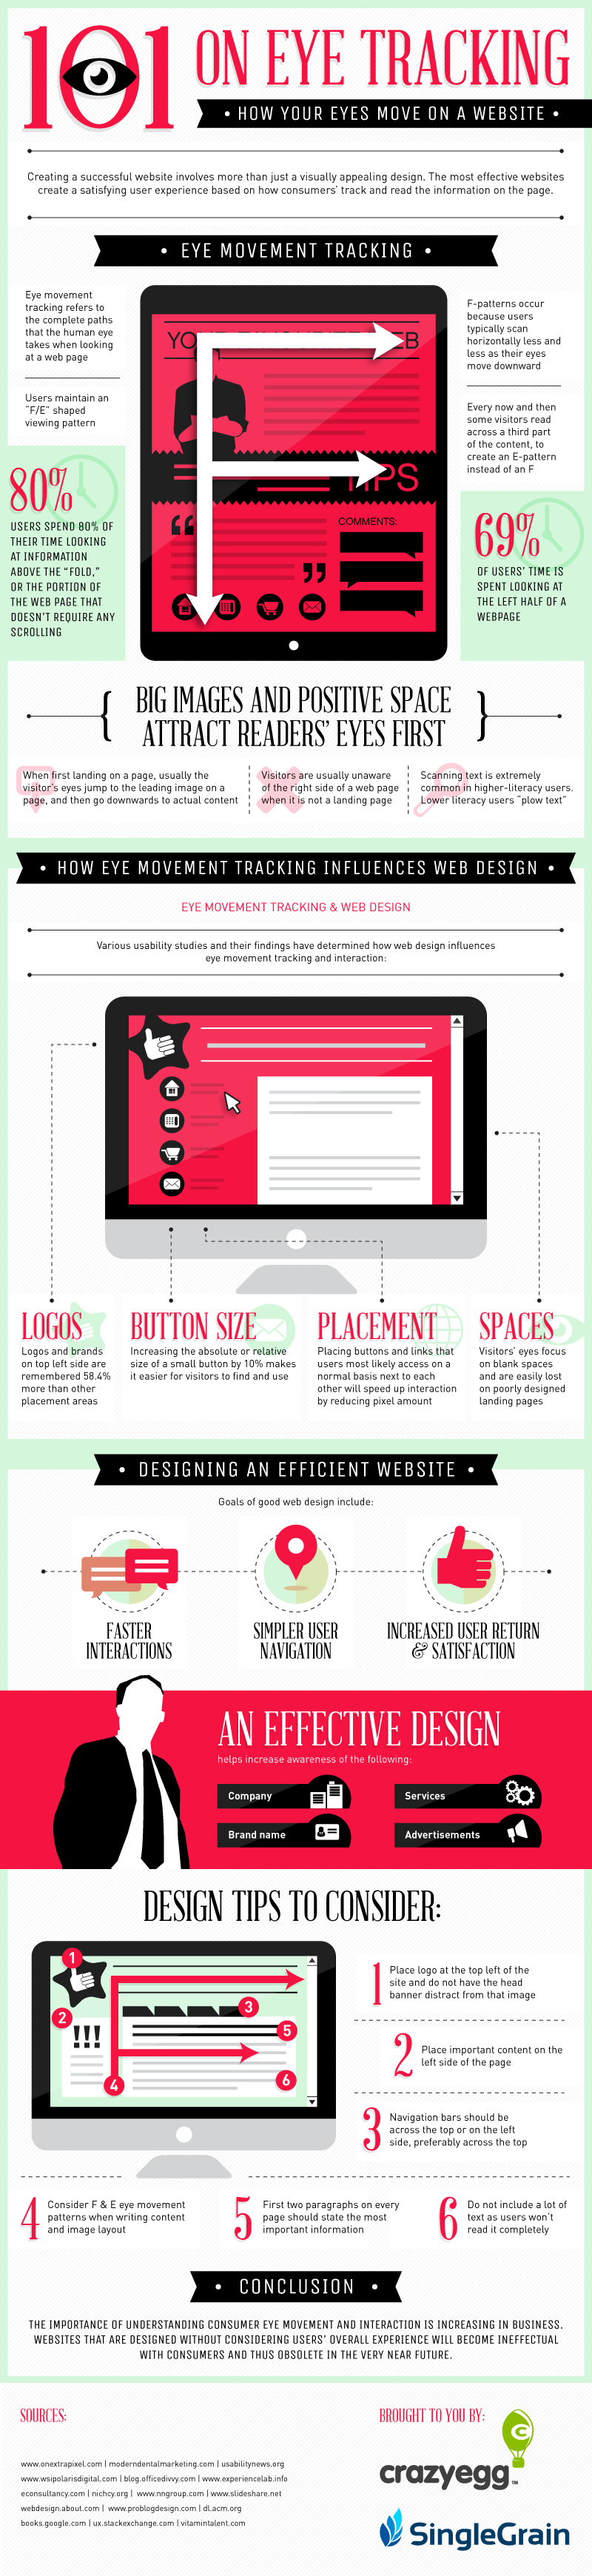 Eye Tracking & Web Design [INFOGRAPHIC]